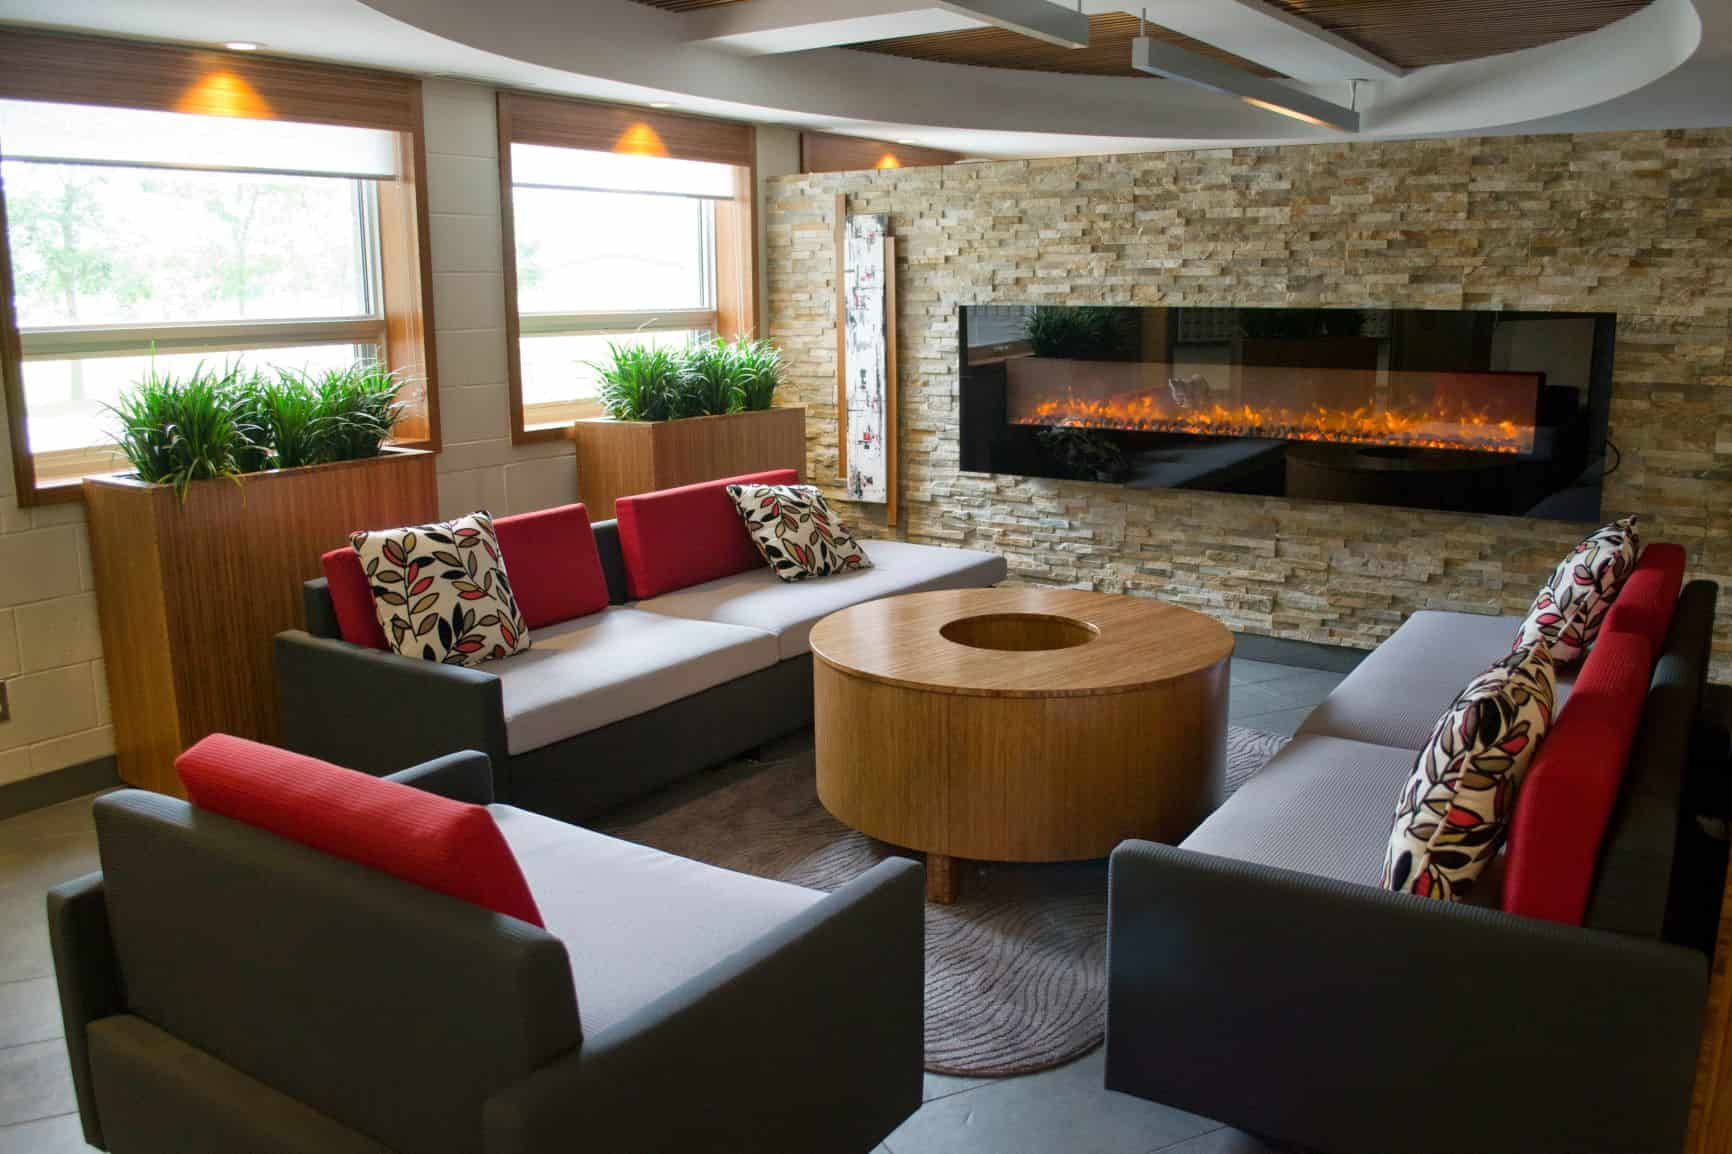 Photo of St. Lawrence College Residence Lounge